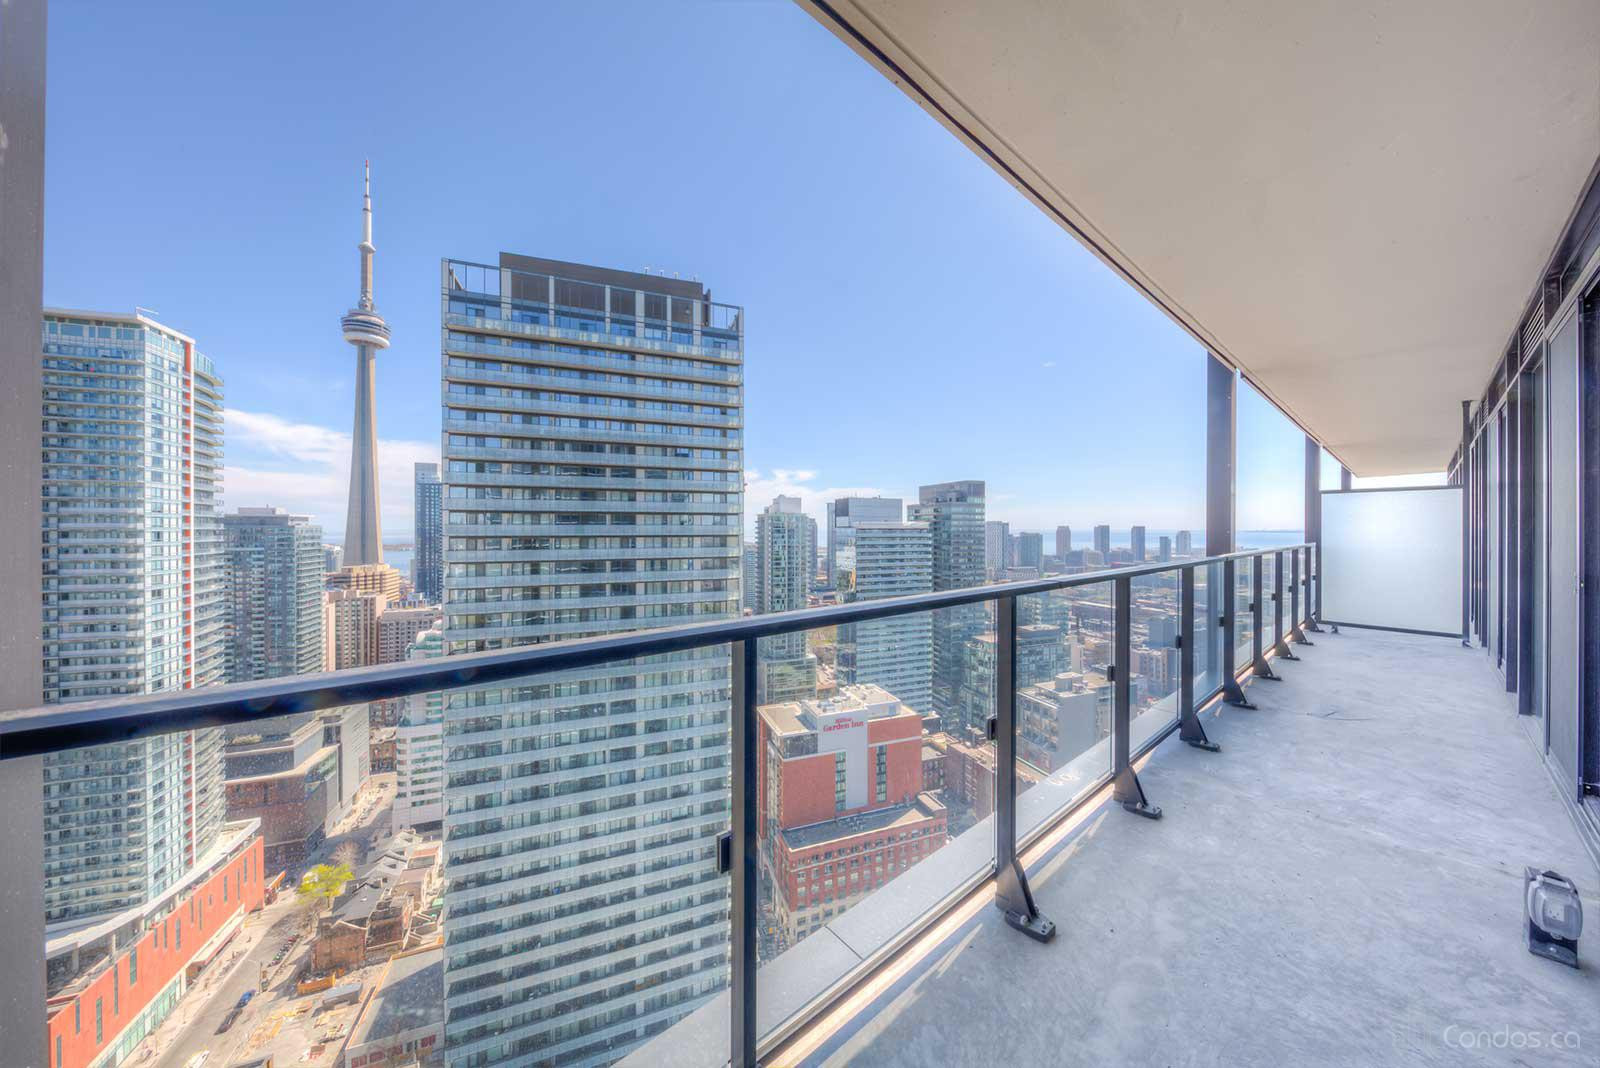 Tableau Condominiums at 125 Peter St, Toronto 1